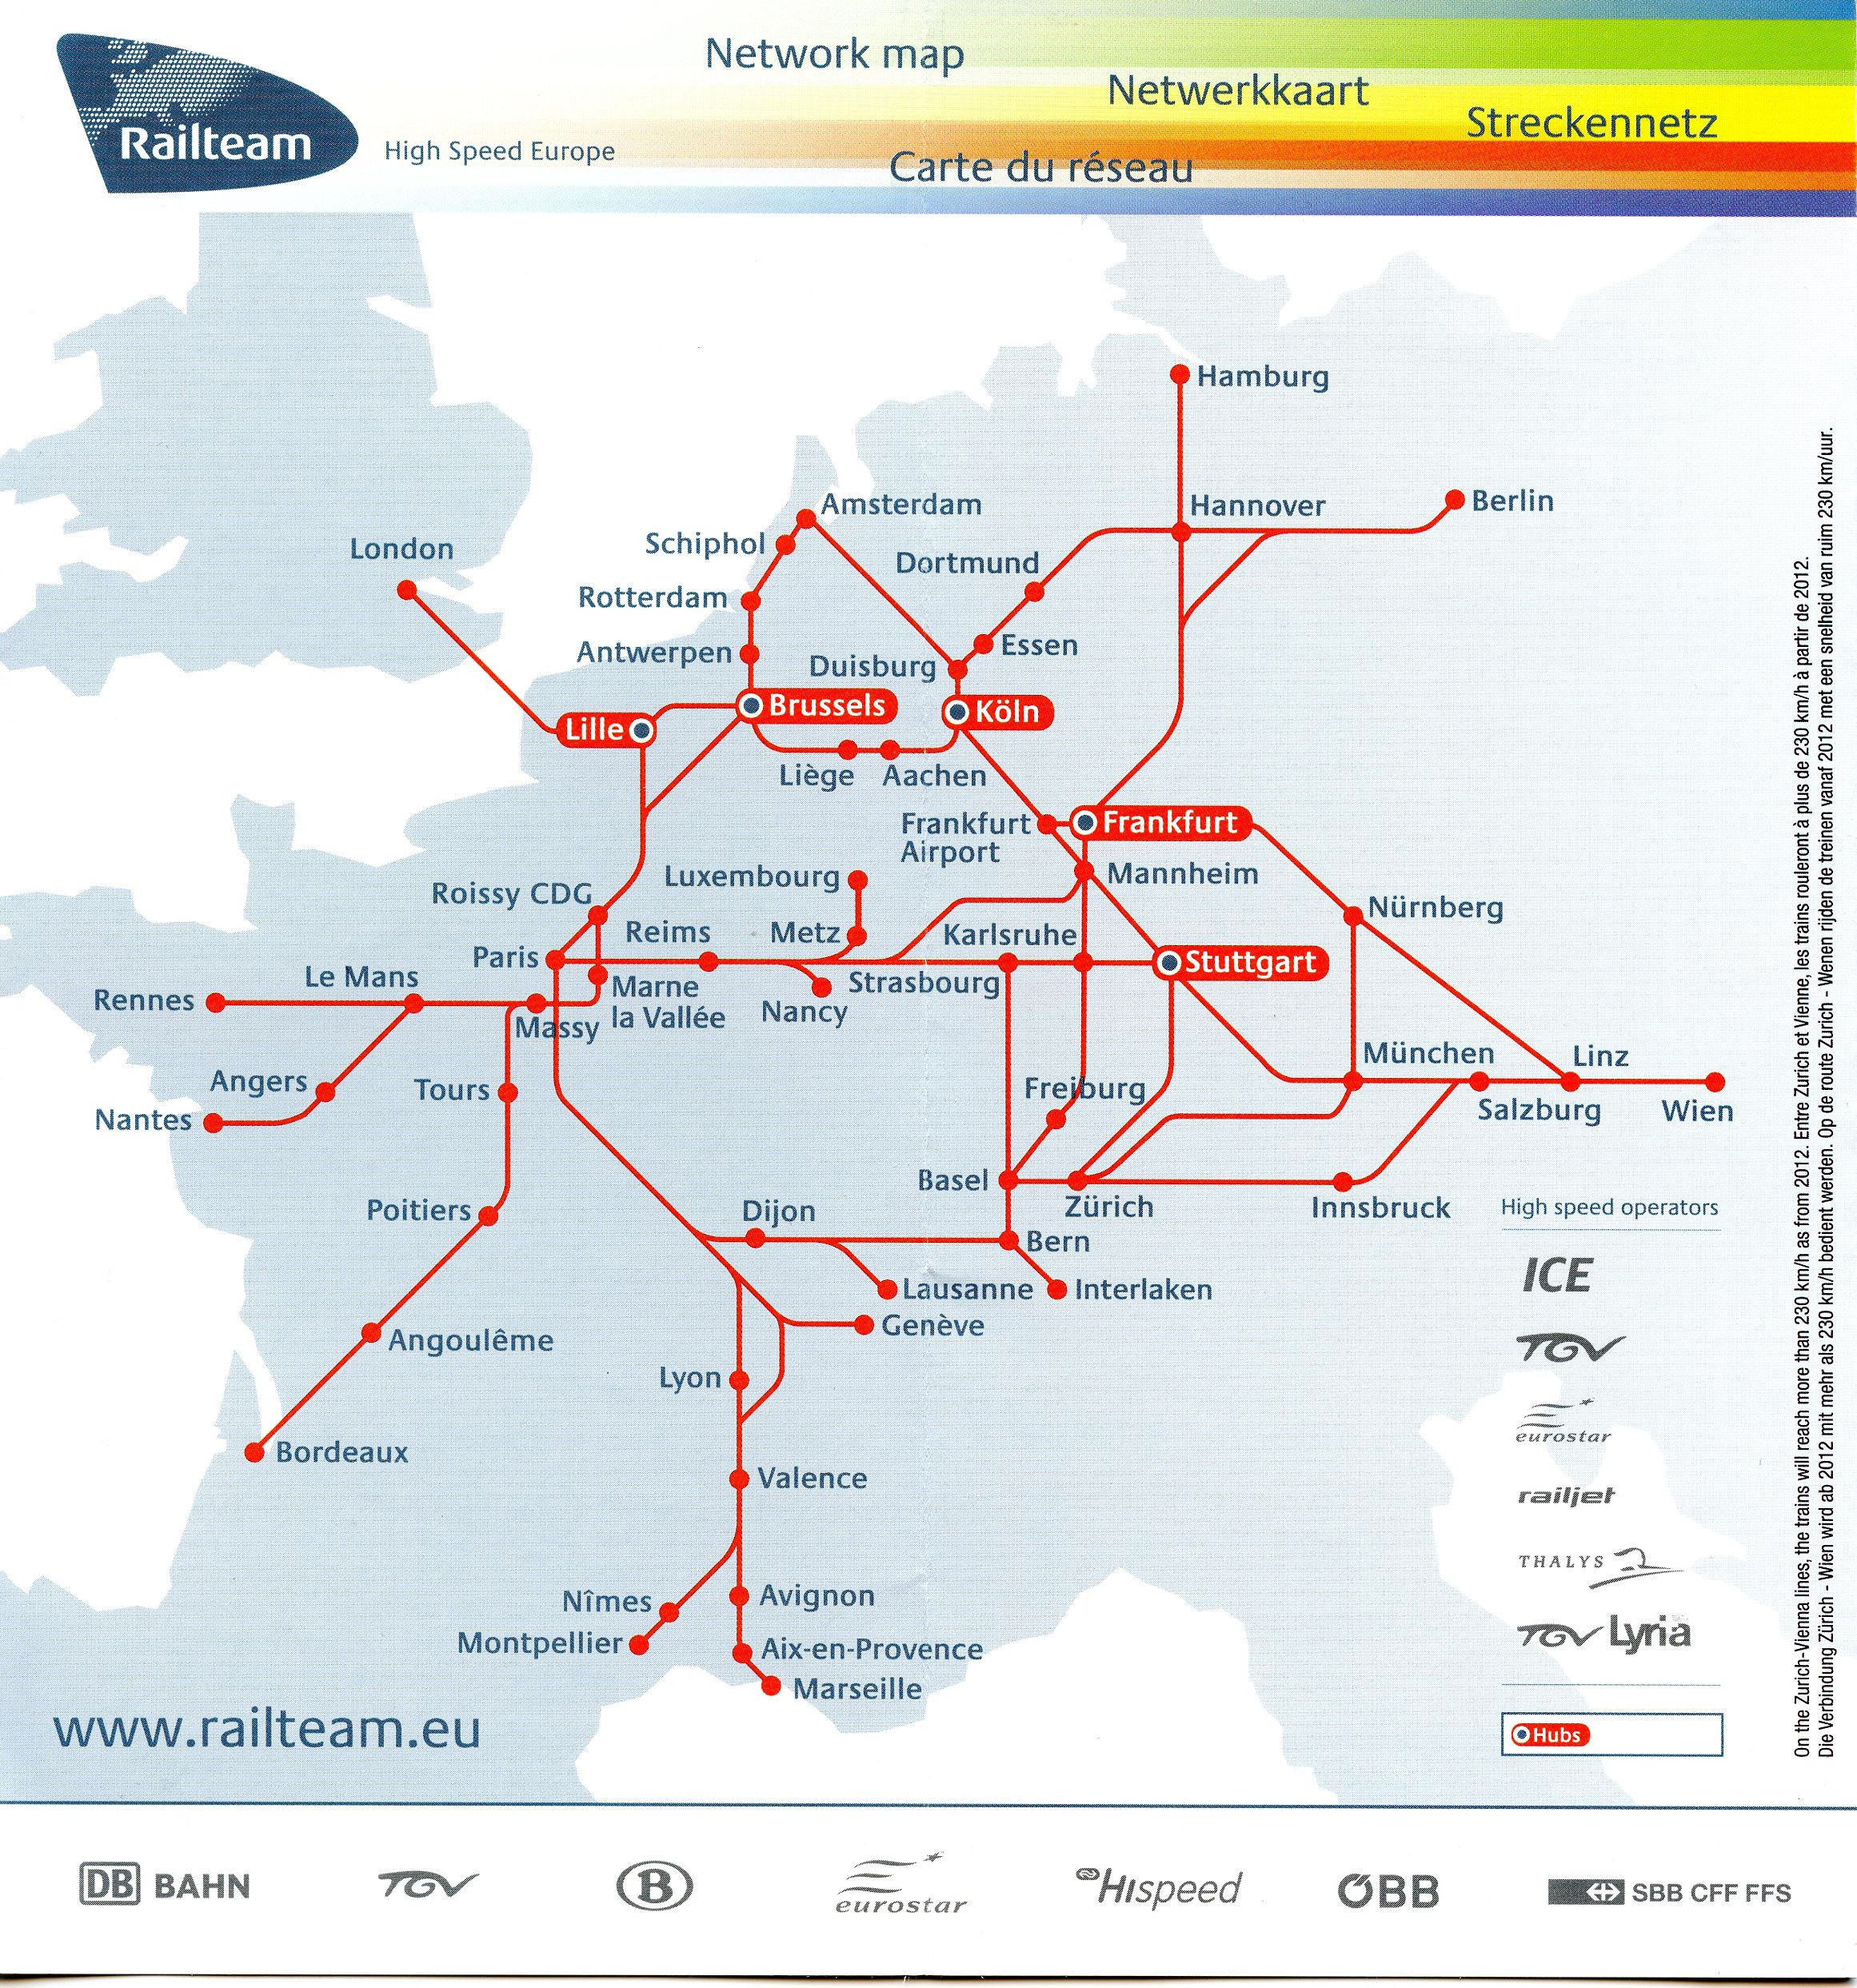 Paris Europe Map.Railteam High Speed Europe